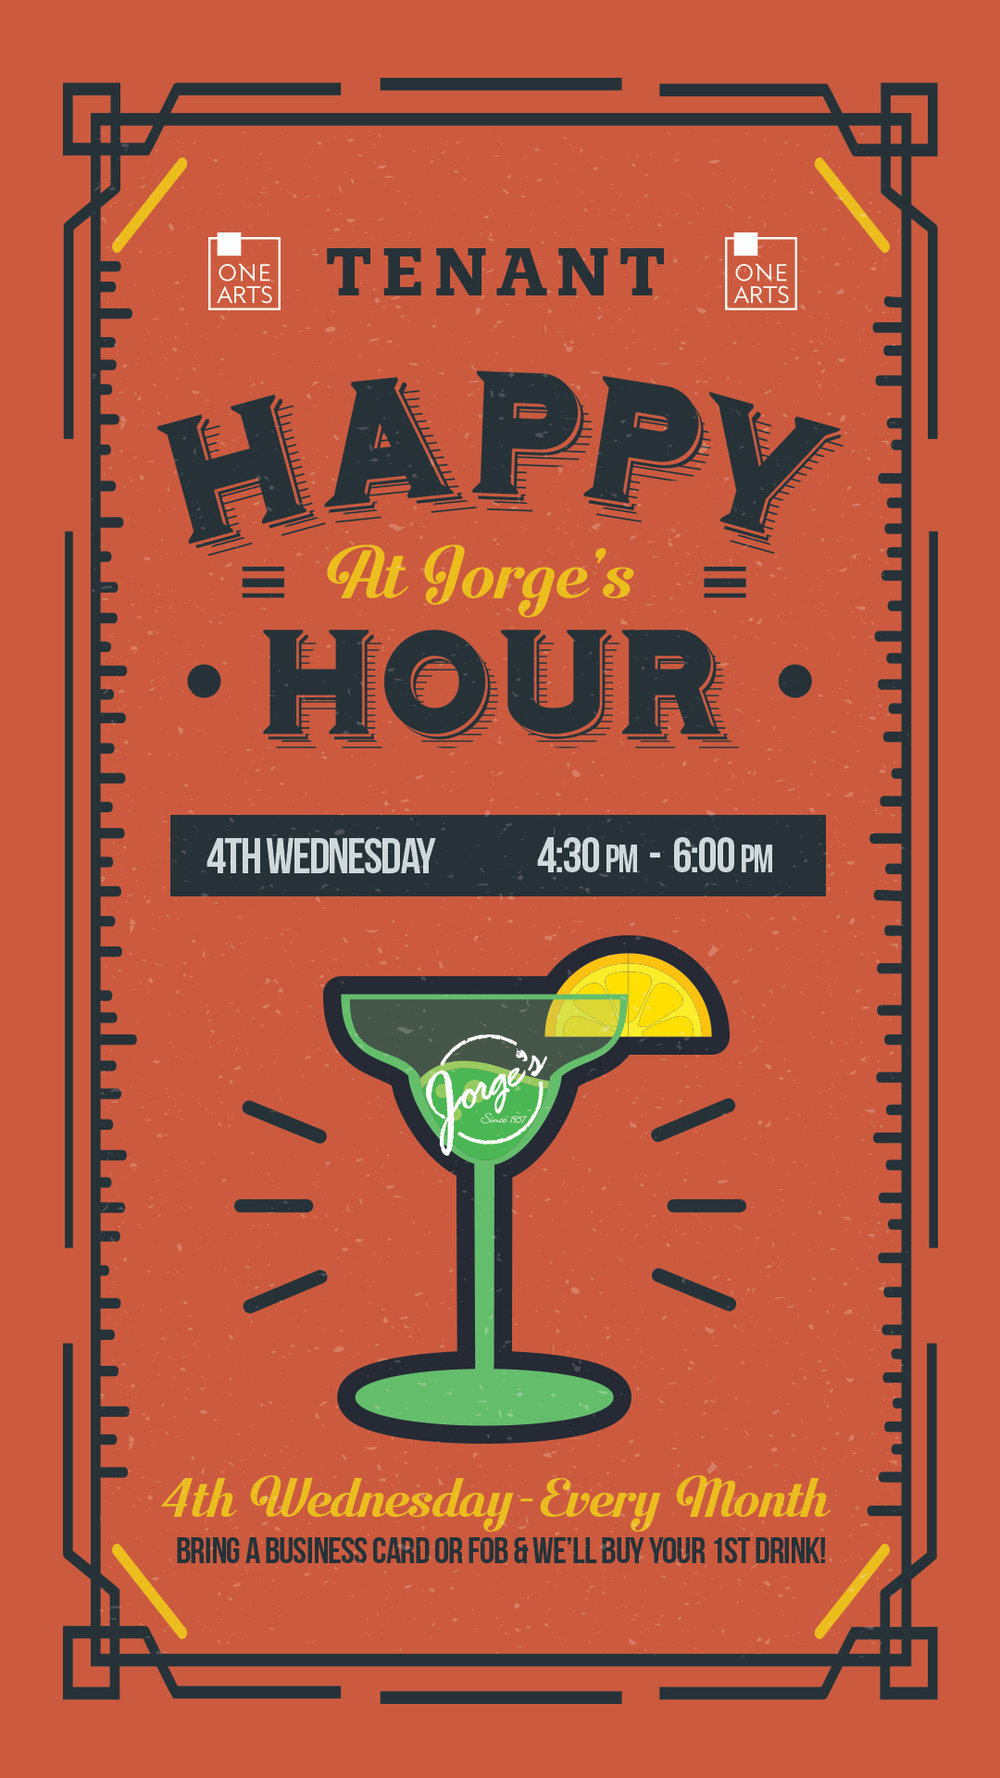 OAP Tenant Happy Hour Digital Sign.jpg